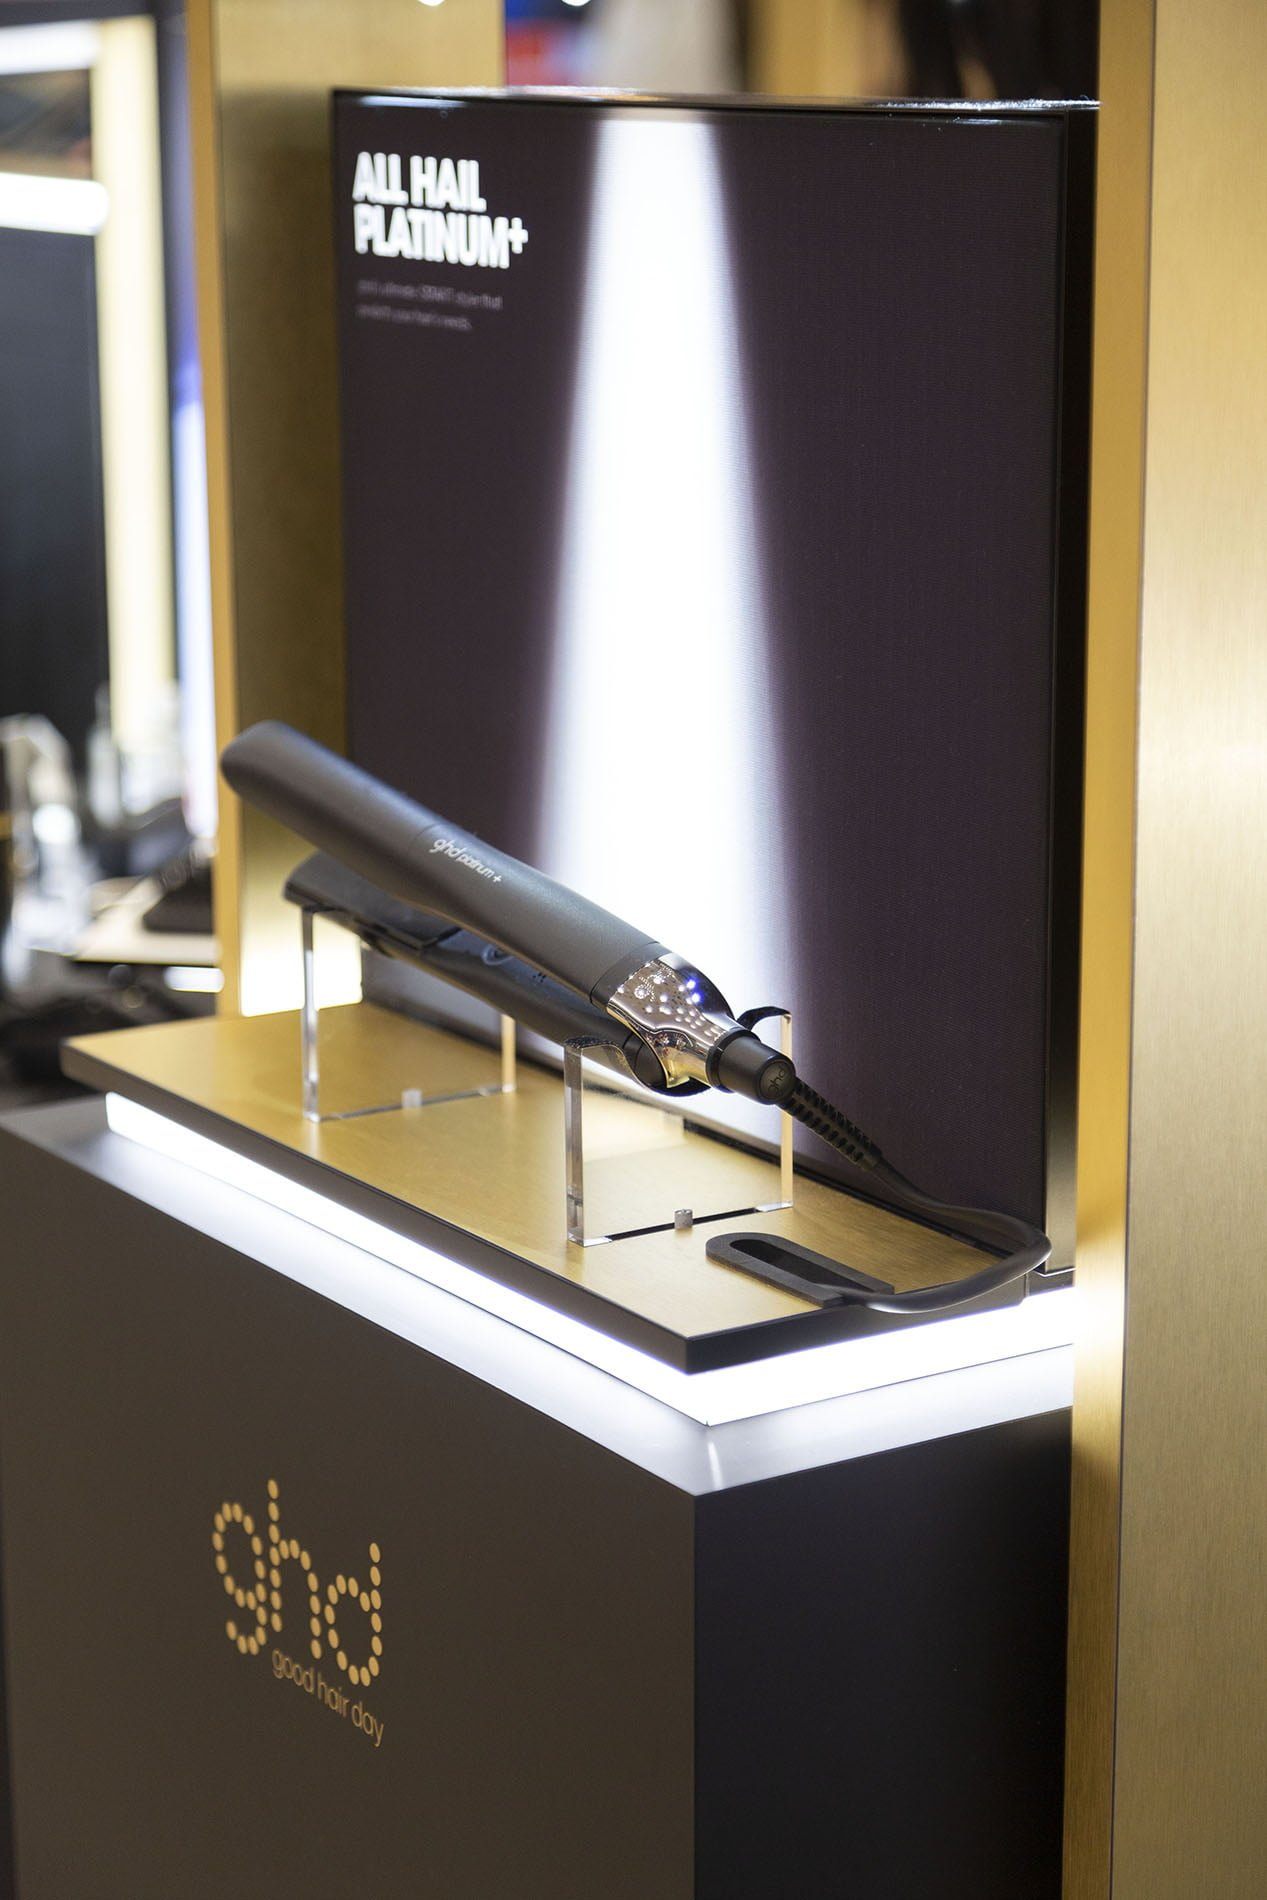 GHD hair straighter